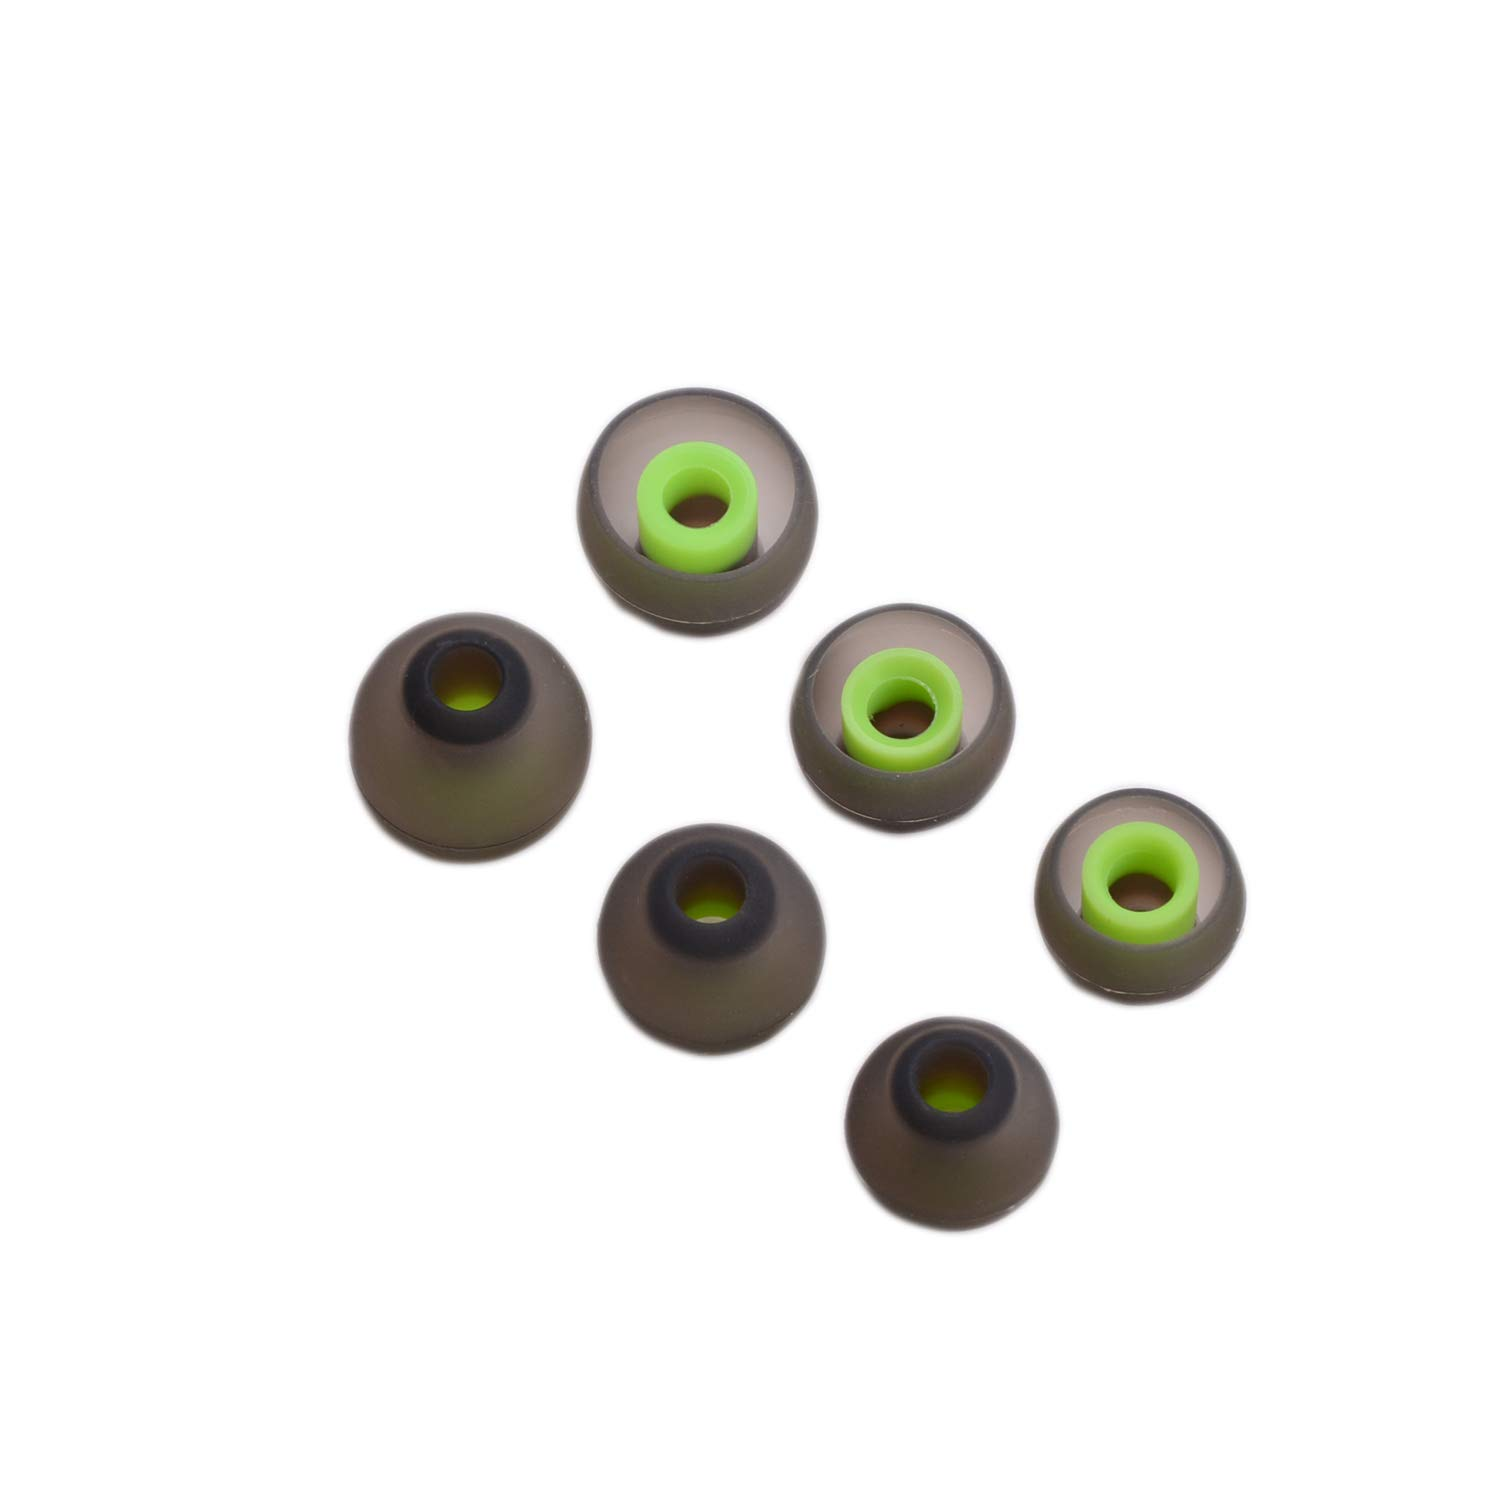 Green+Black SUNMNS 6 Pairs Silicone Eartips Eargels Earpads Ear Tips Gels Bud for Senso Zeus Otium Hussar Mpow Sport Bluetooth Headphones